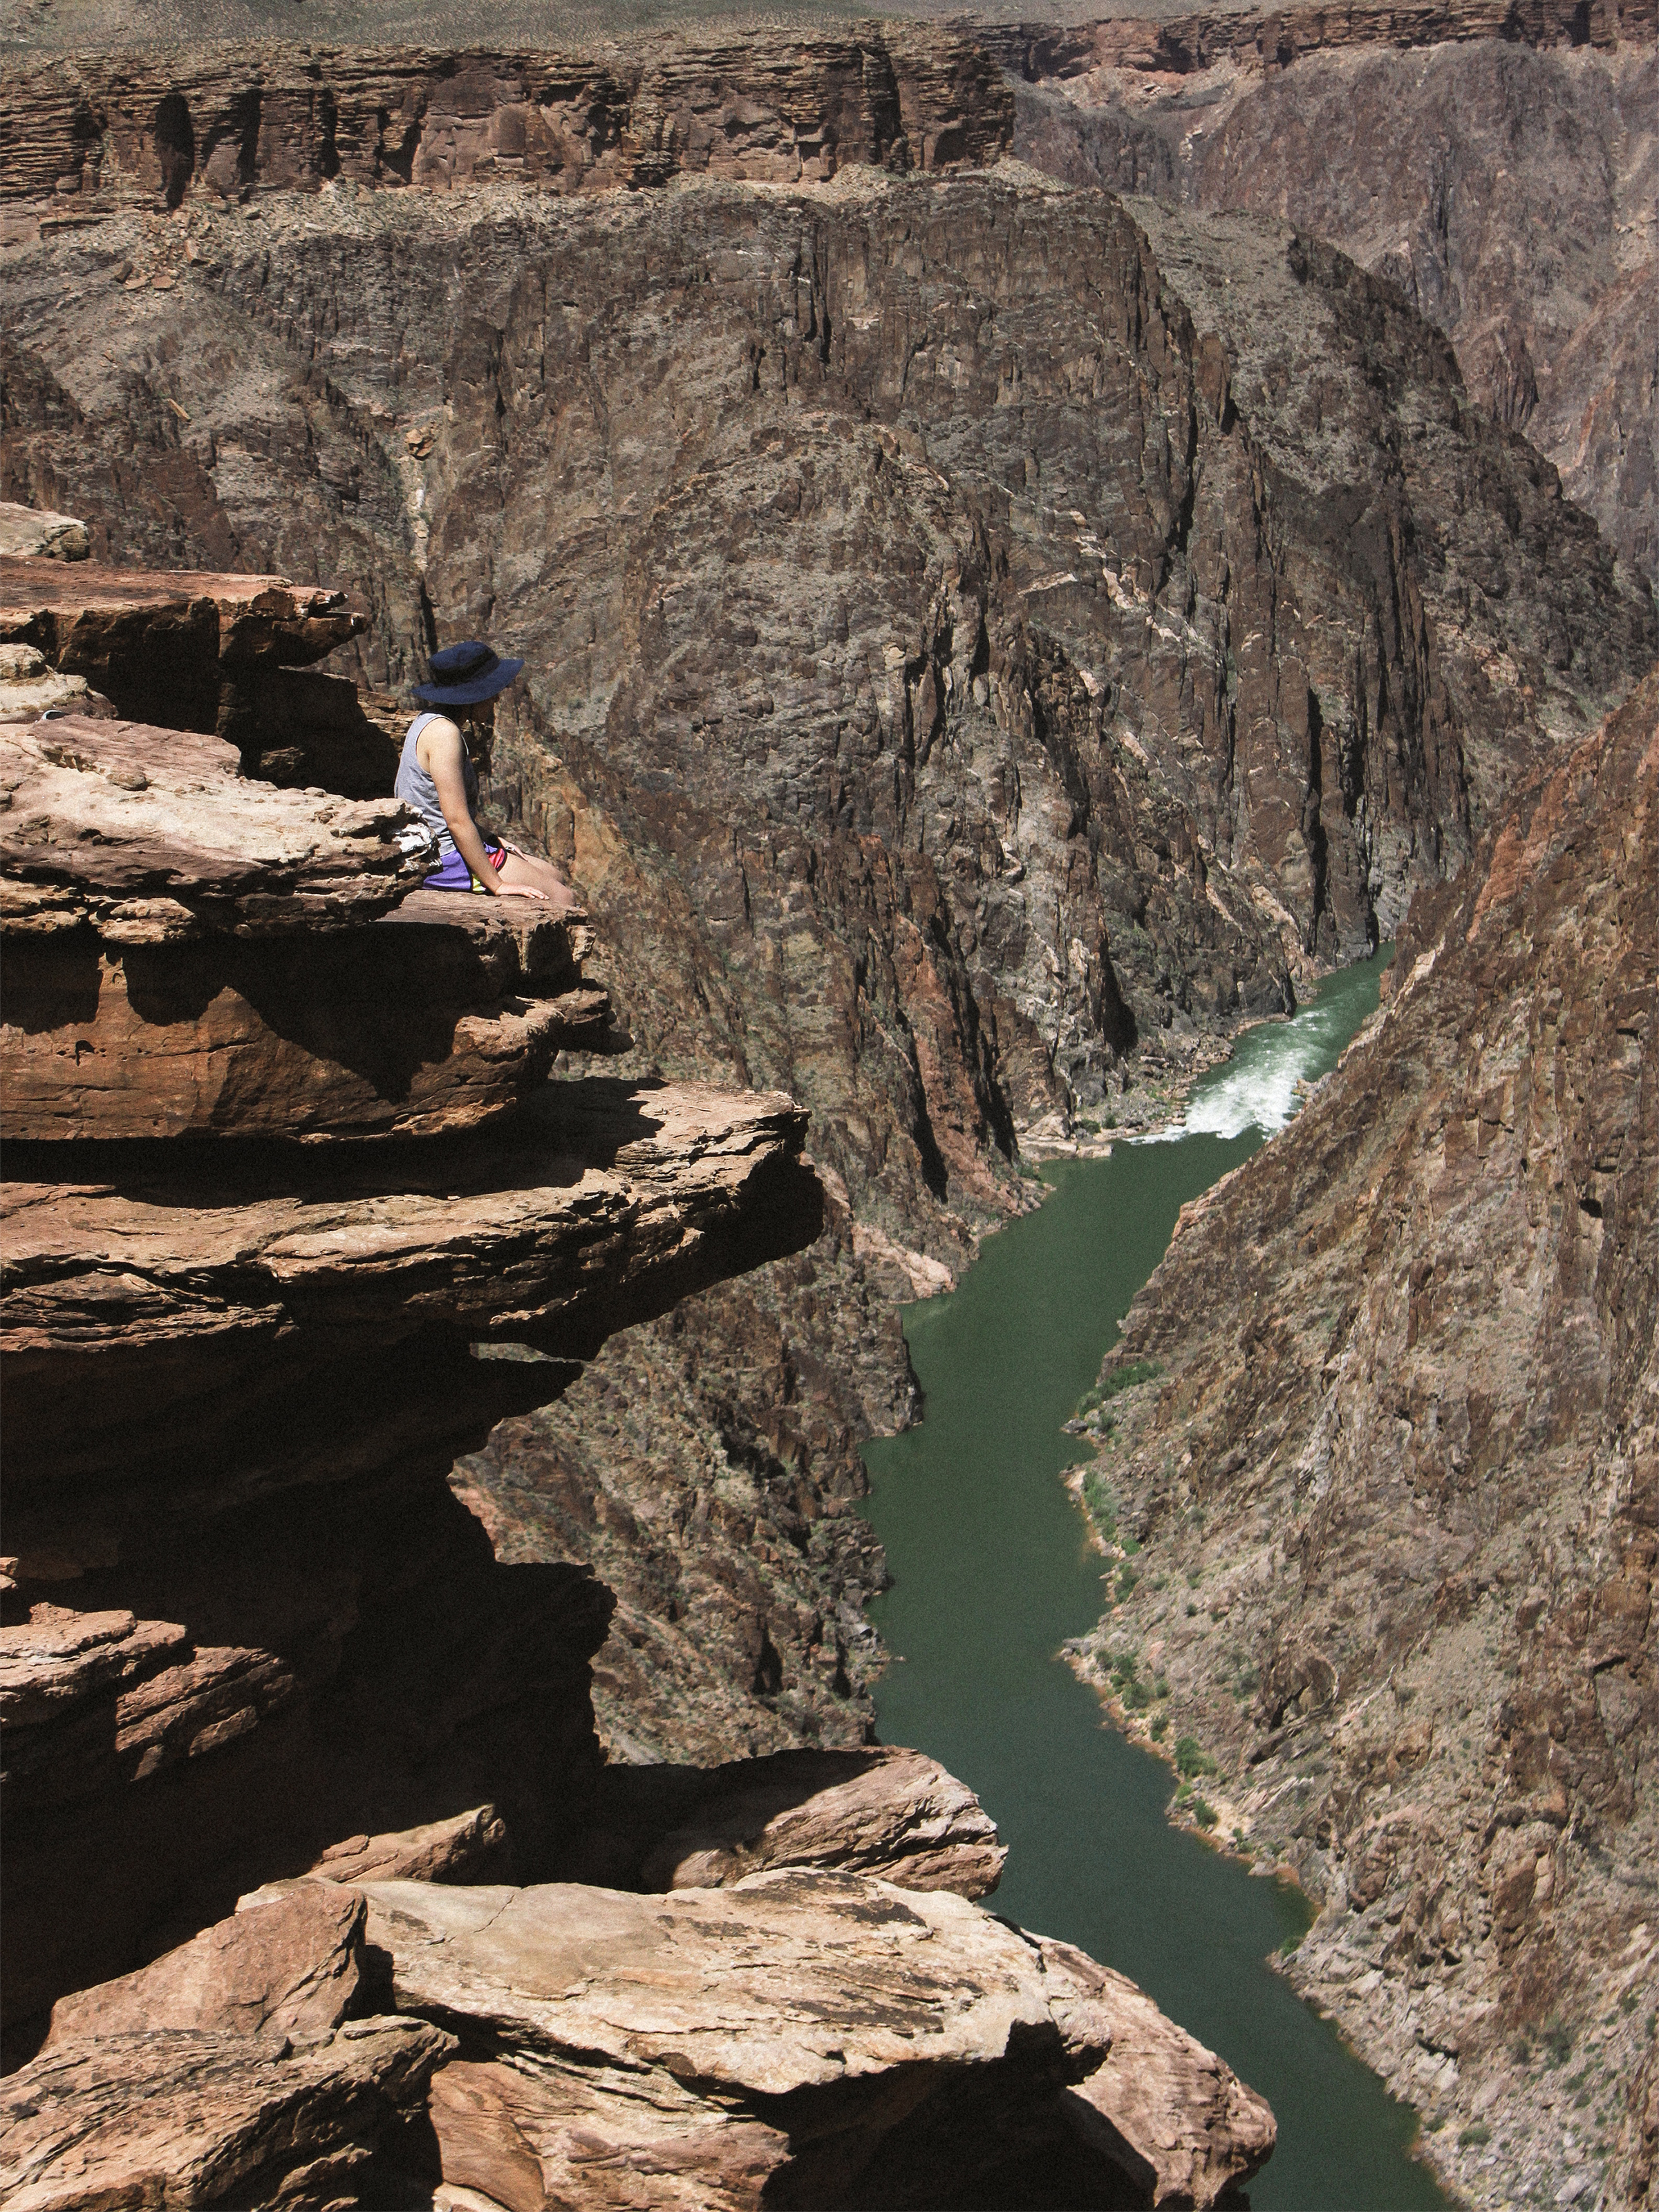 Vivian sitting at Plateau Point with the Colorado River beneath her.